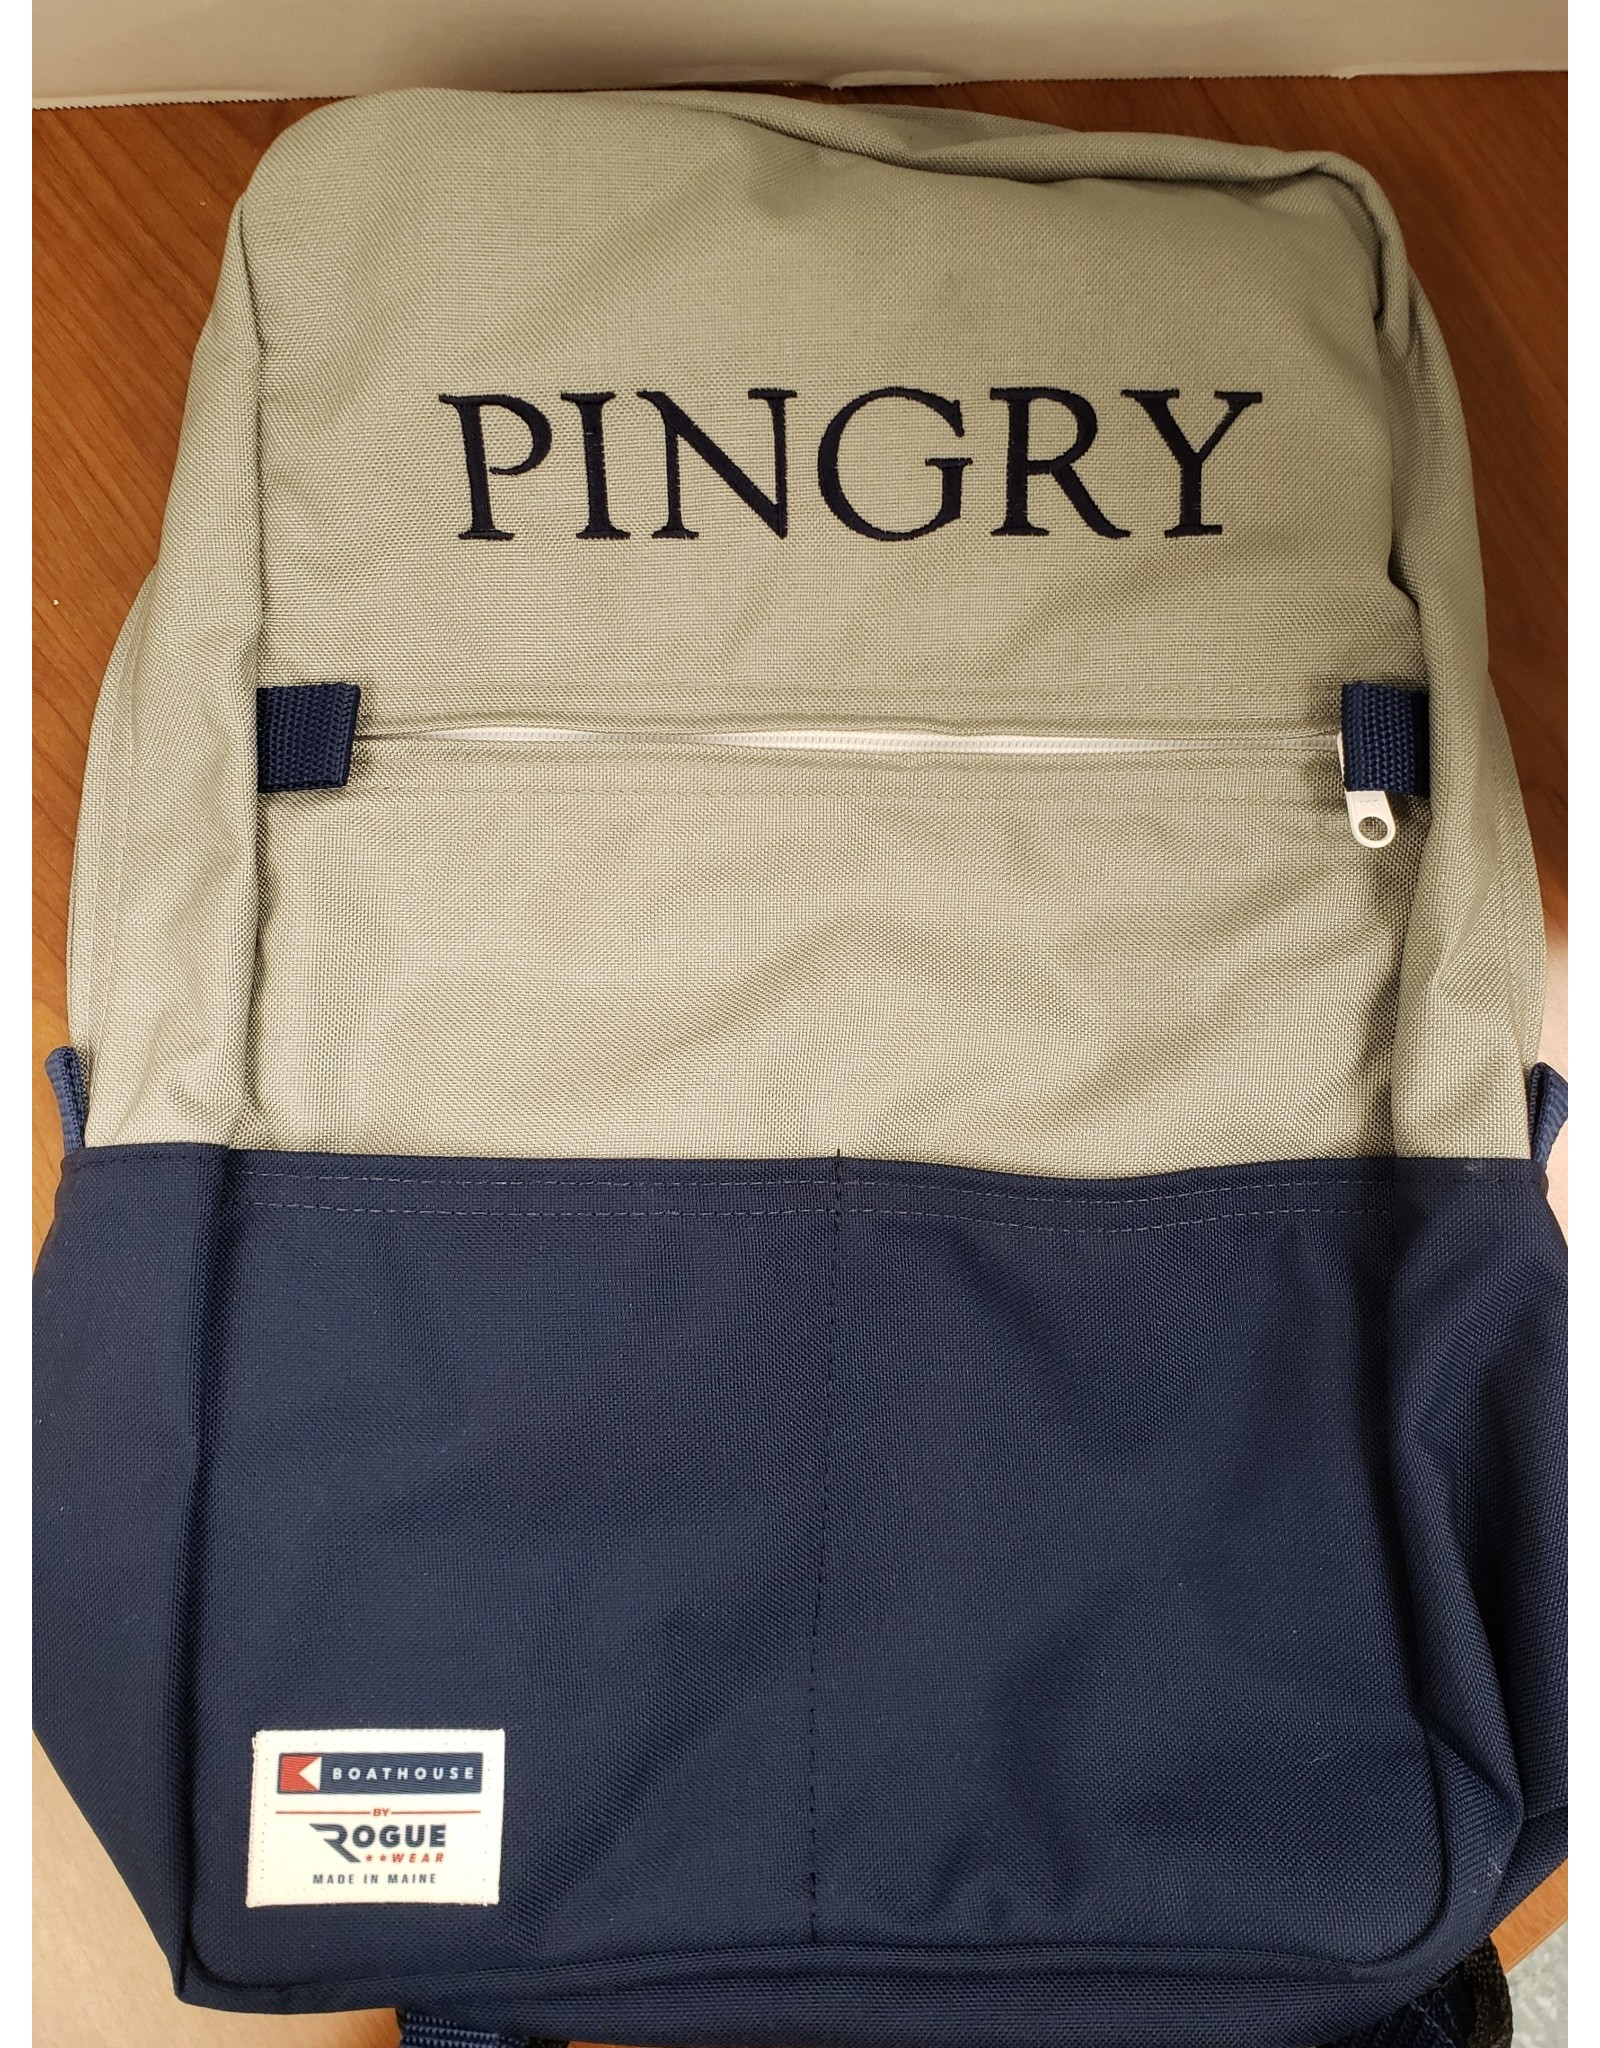 Boathouse Backpack-Navy/Gray-12 x 18 x 6